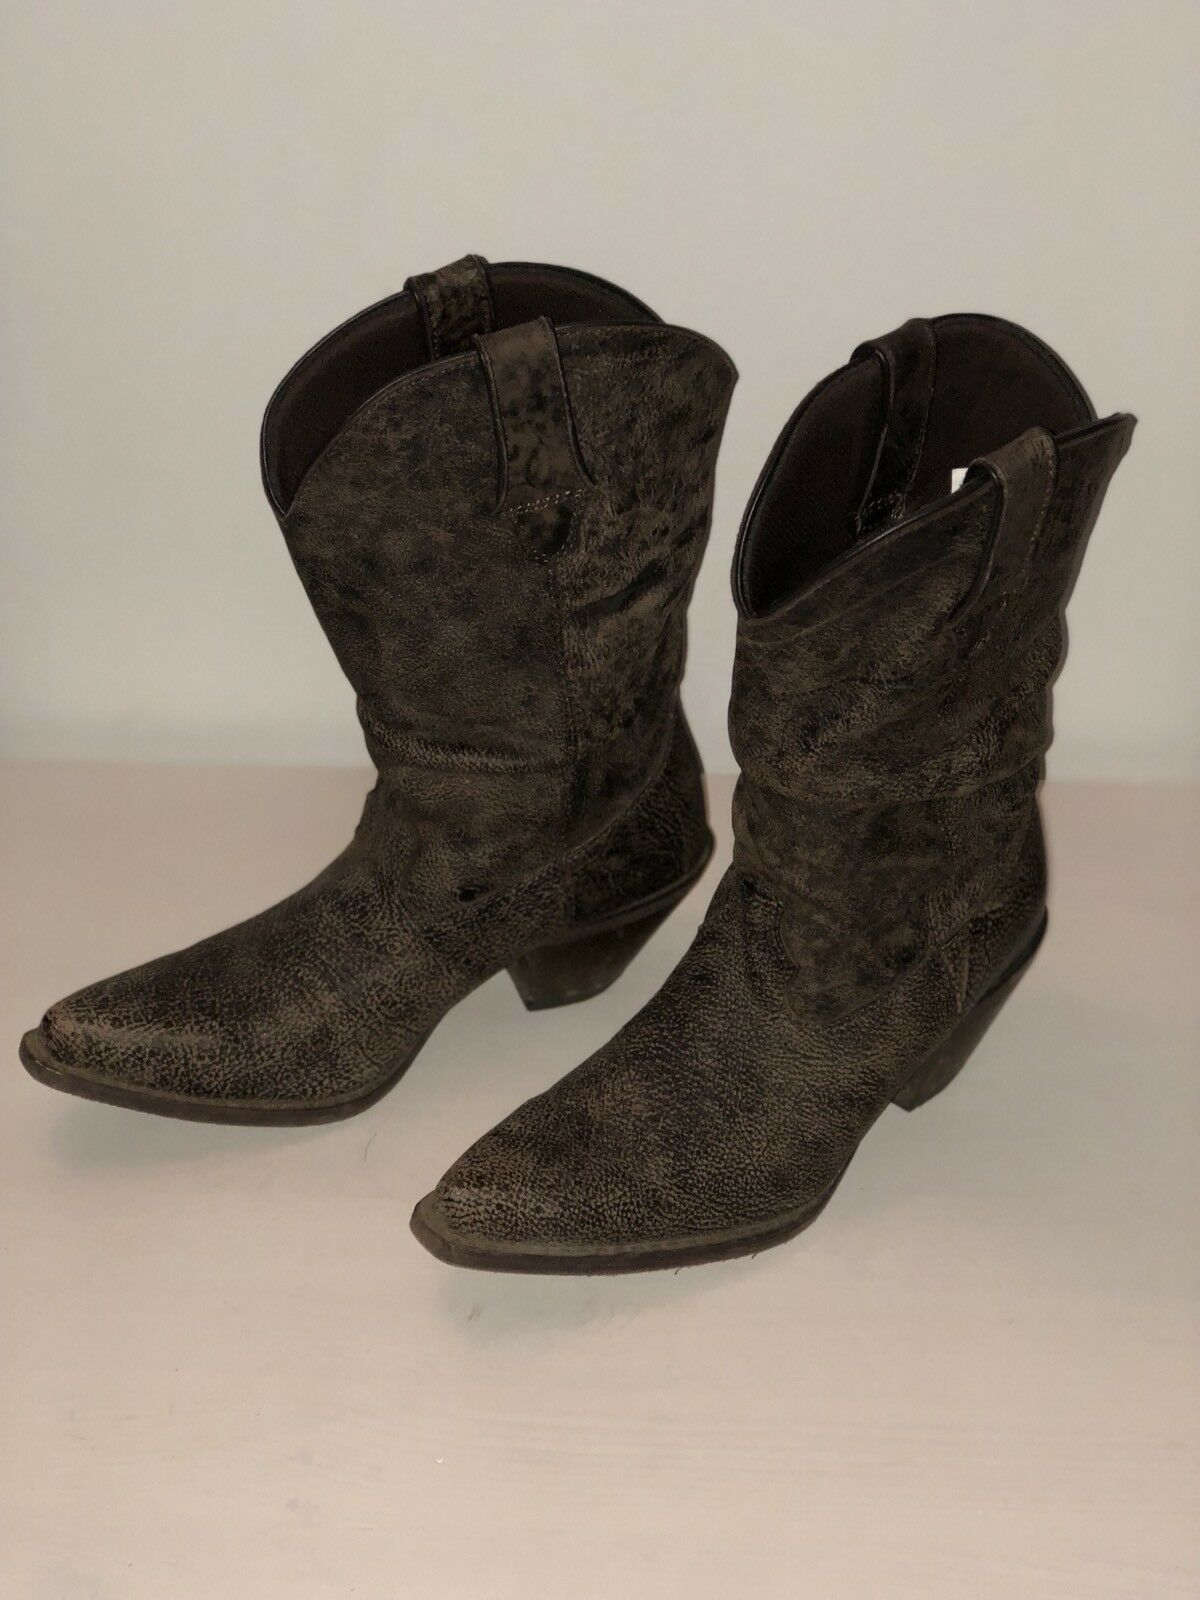 NEW  Durango Women's Slouch Cowgirl Cowboy Boots shoes Brown Size 7